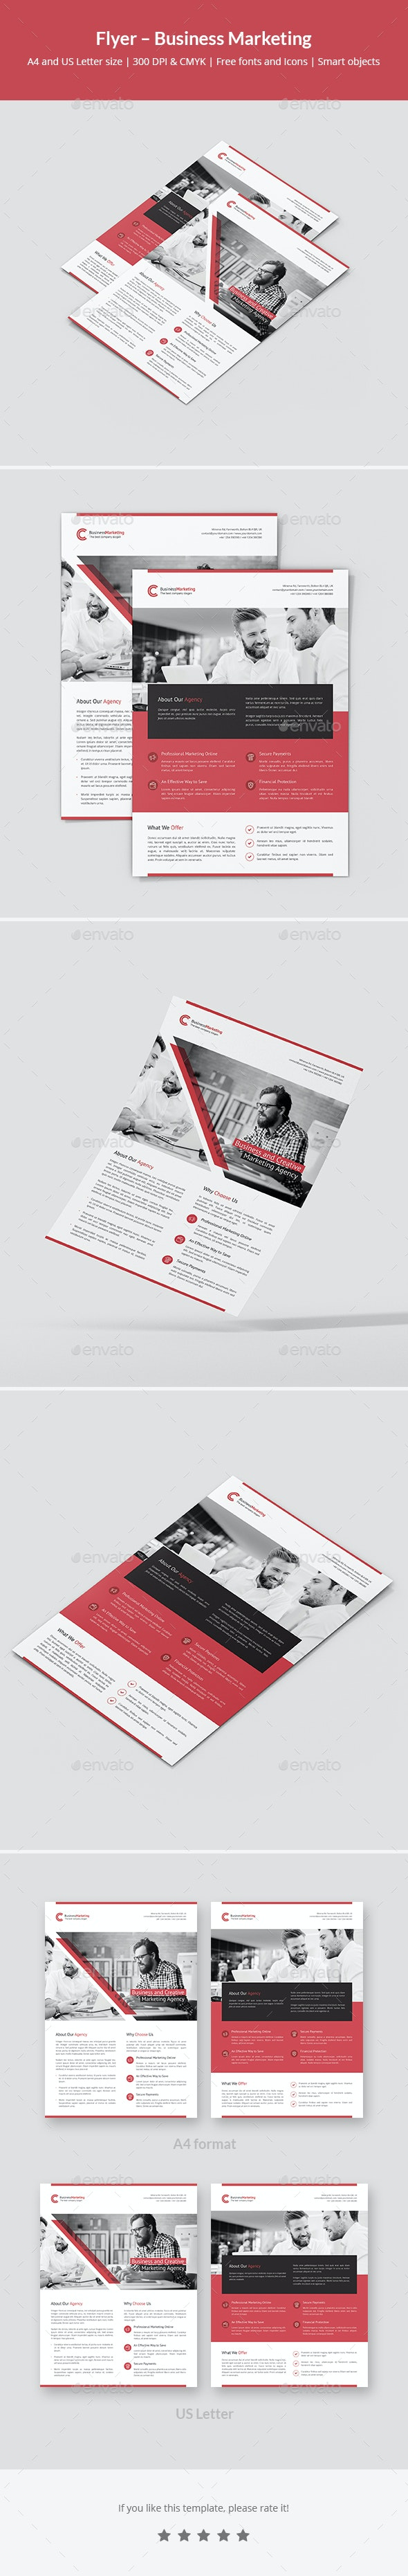 Flyer – Business Marketing - Corporate Flyers